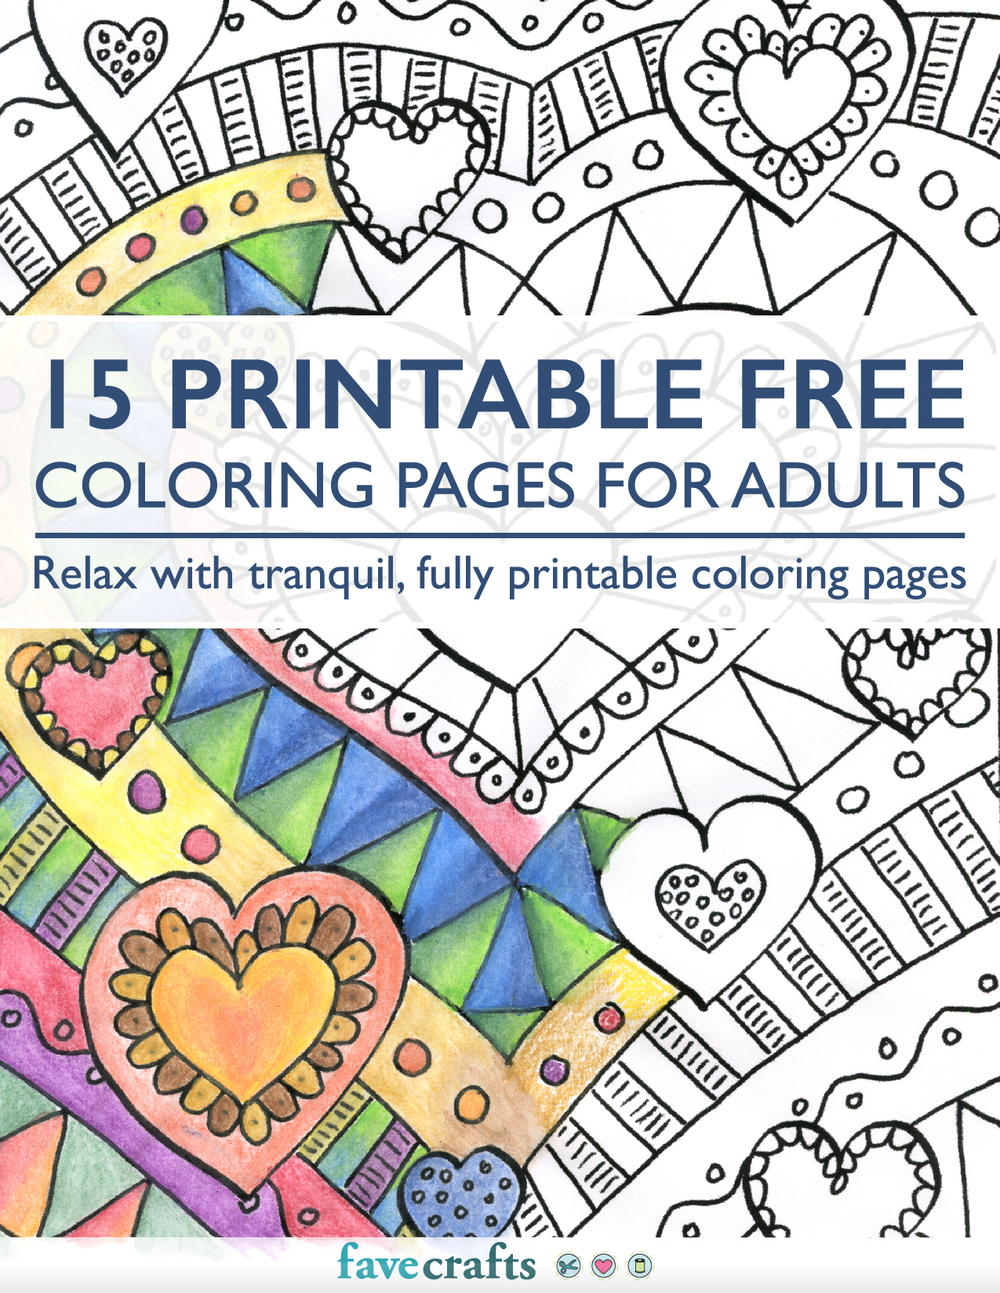 15 Printable Free Coloring Pages for Adults free eBook ...   printable coloring pages for adults